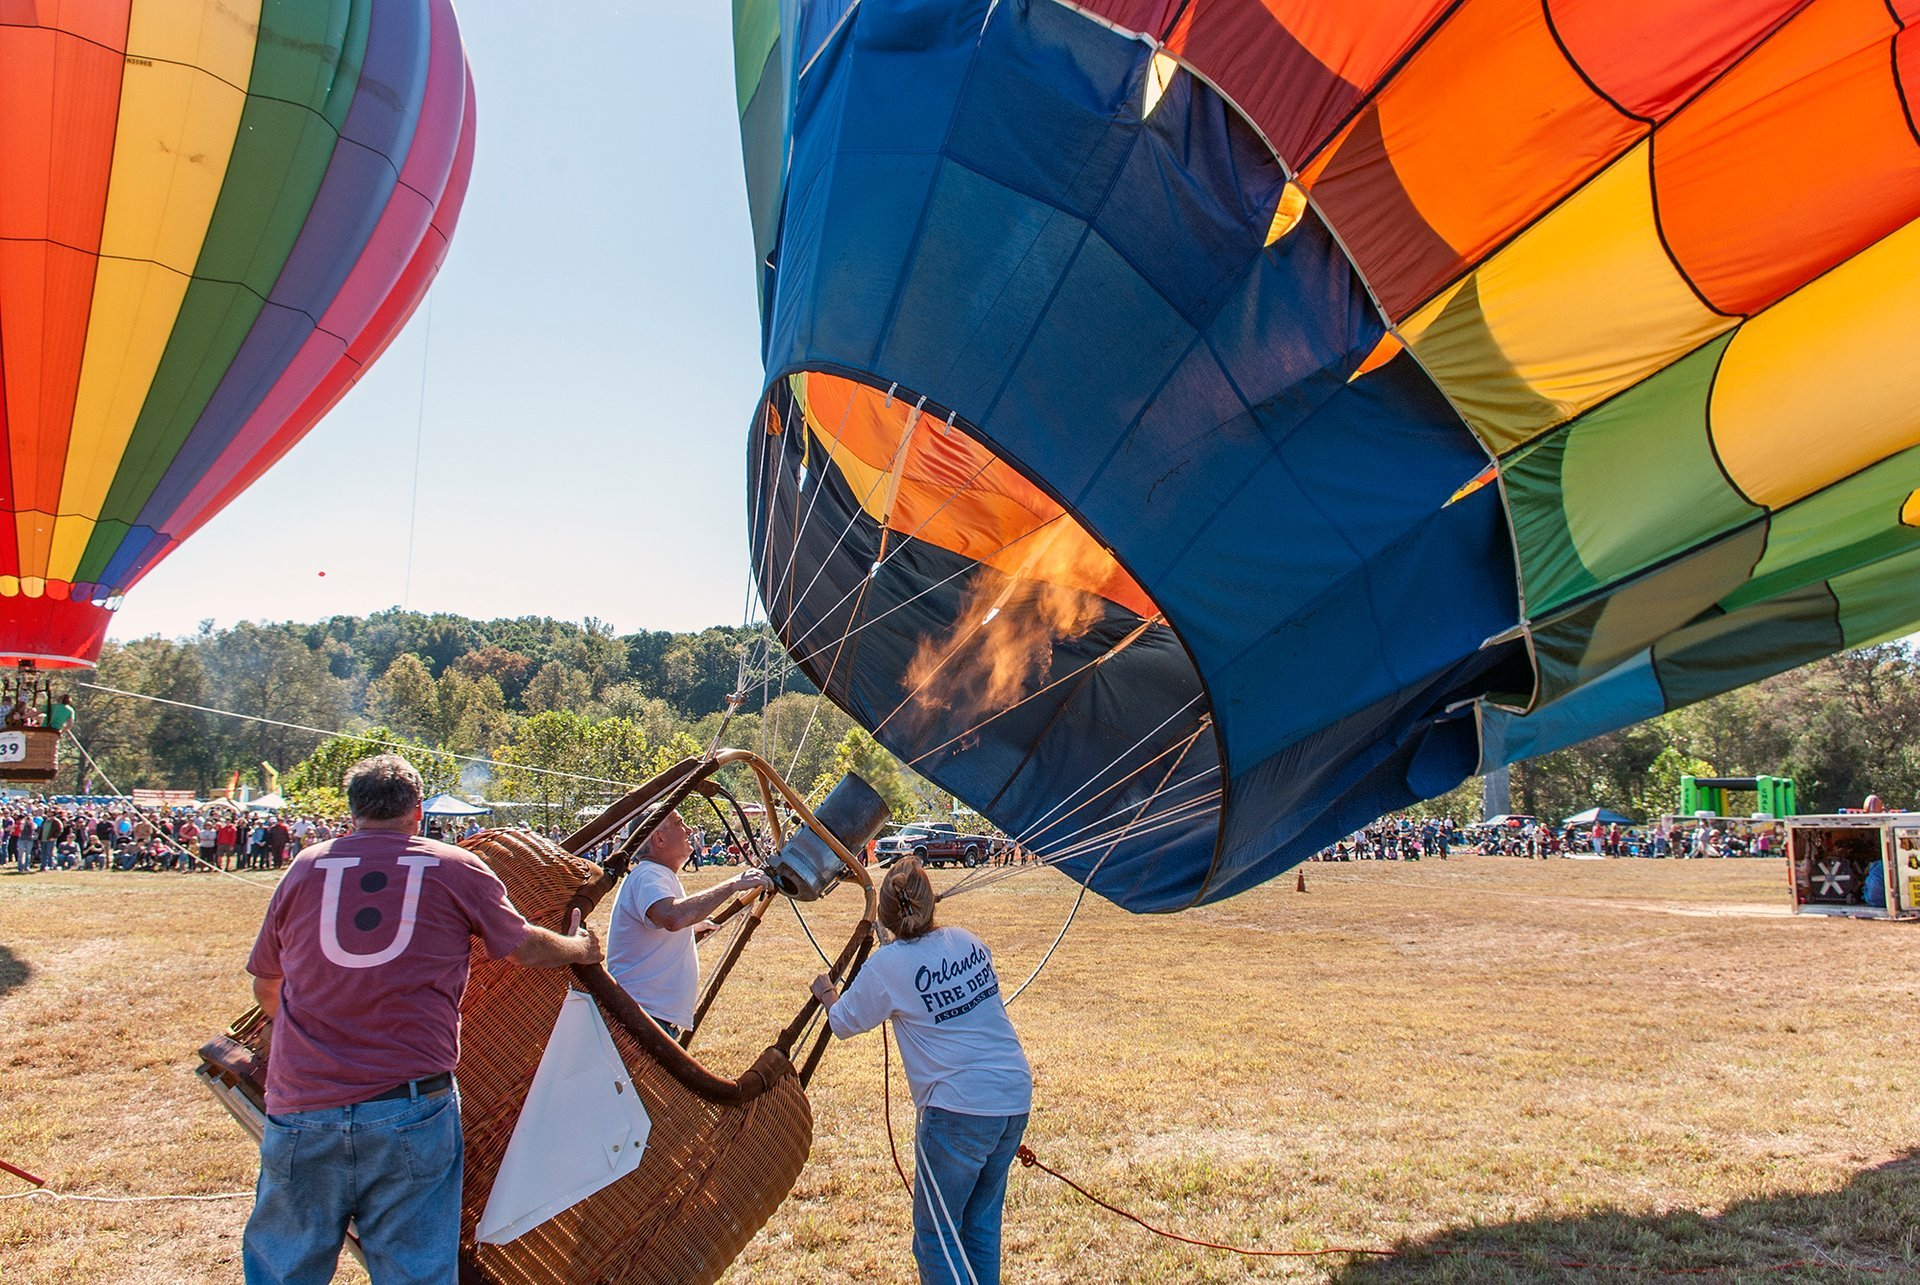 Best time for Carolina Balloon Fest 2020